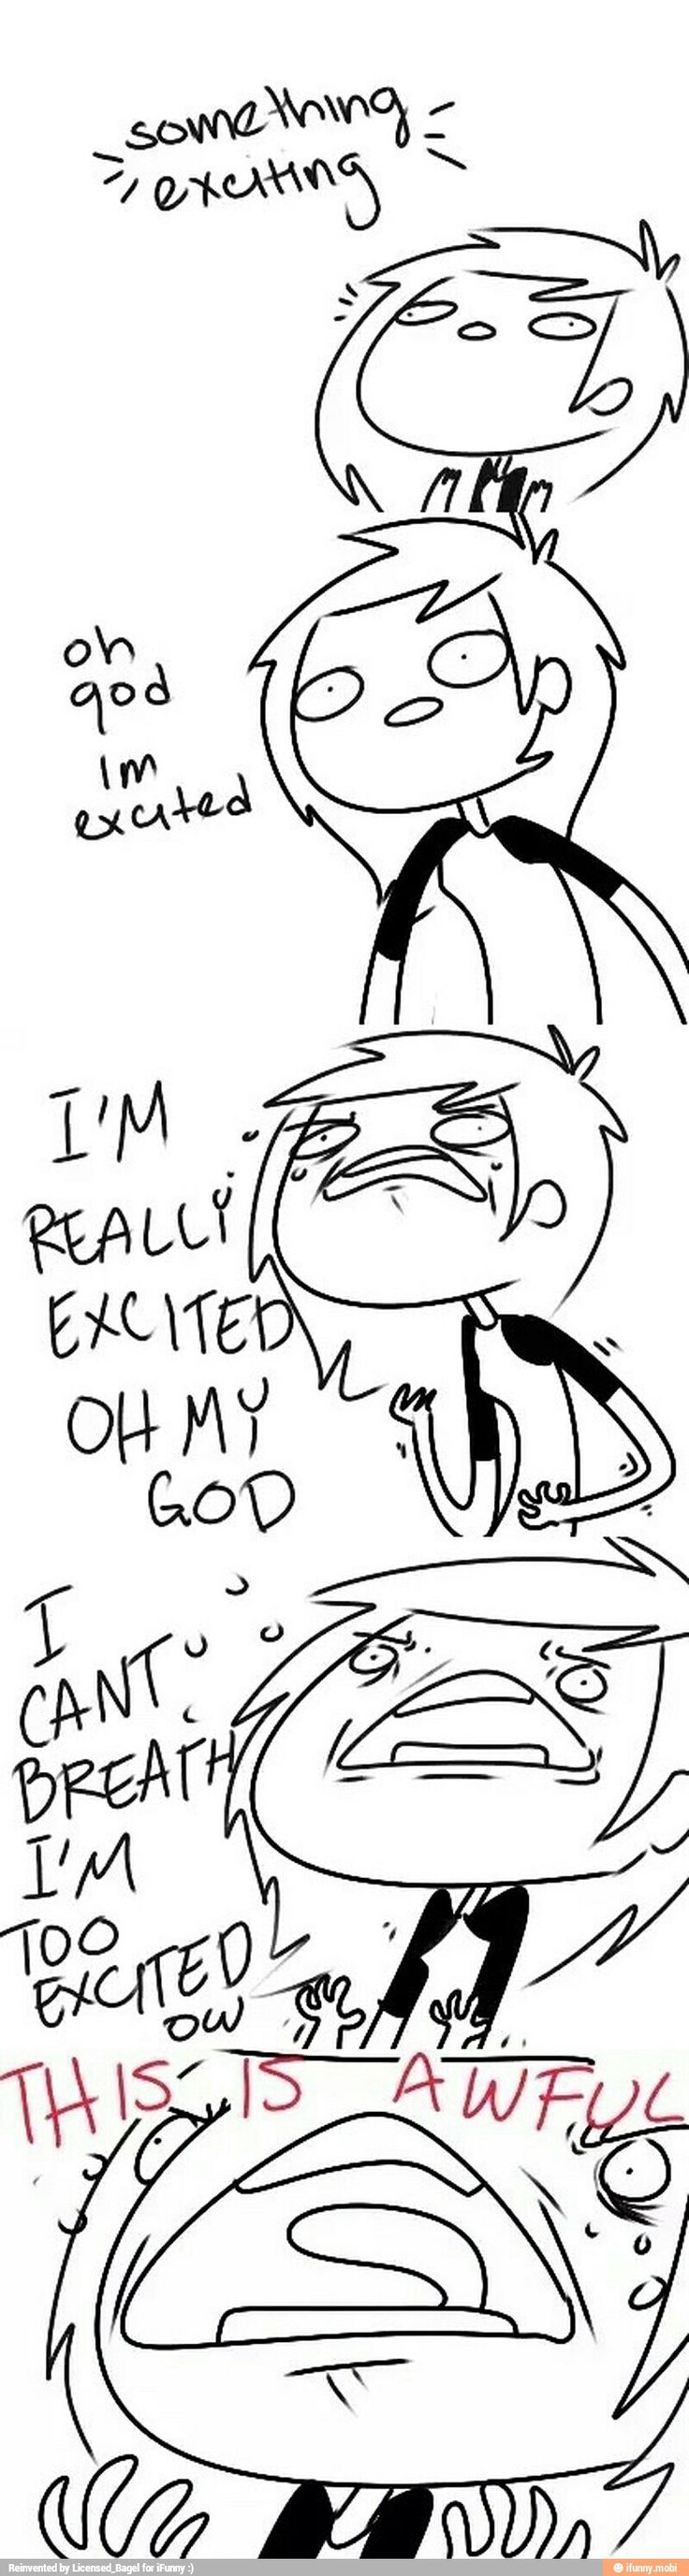 Every time a new Star Wars/Star Trek/Doctor Who/ Sherlock comes out!!!! Uhg!! I CAN'T WAIT!